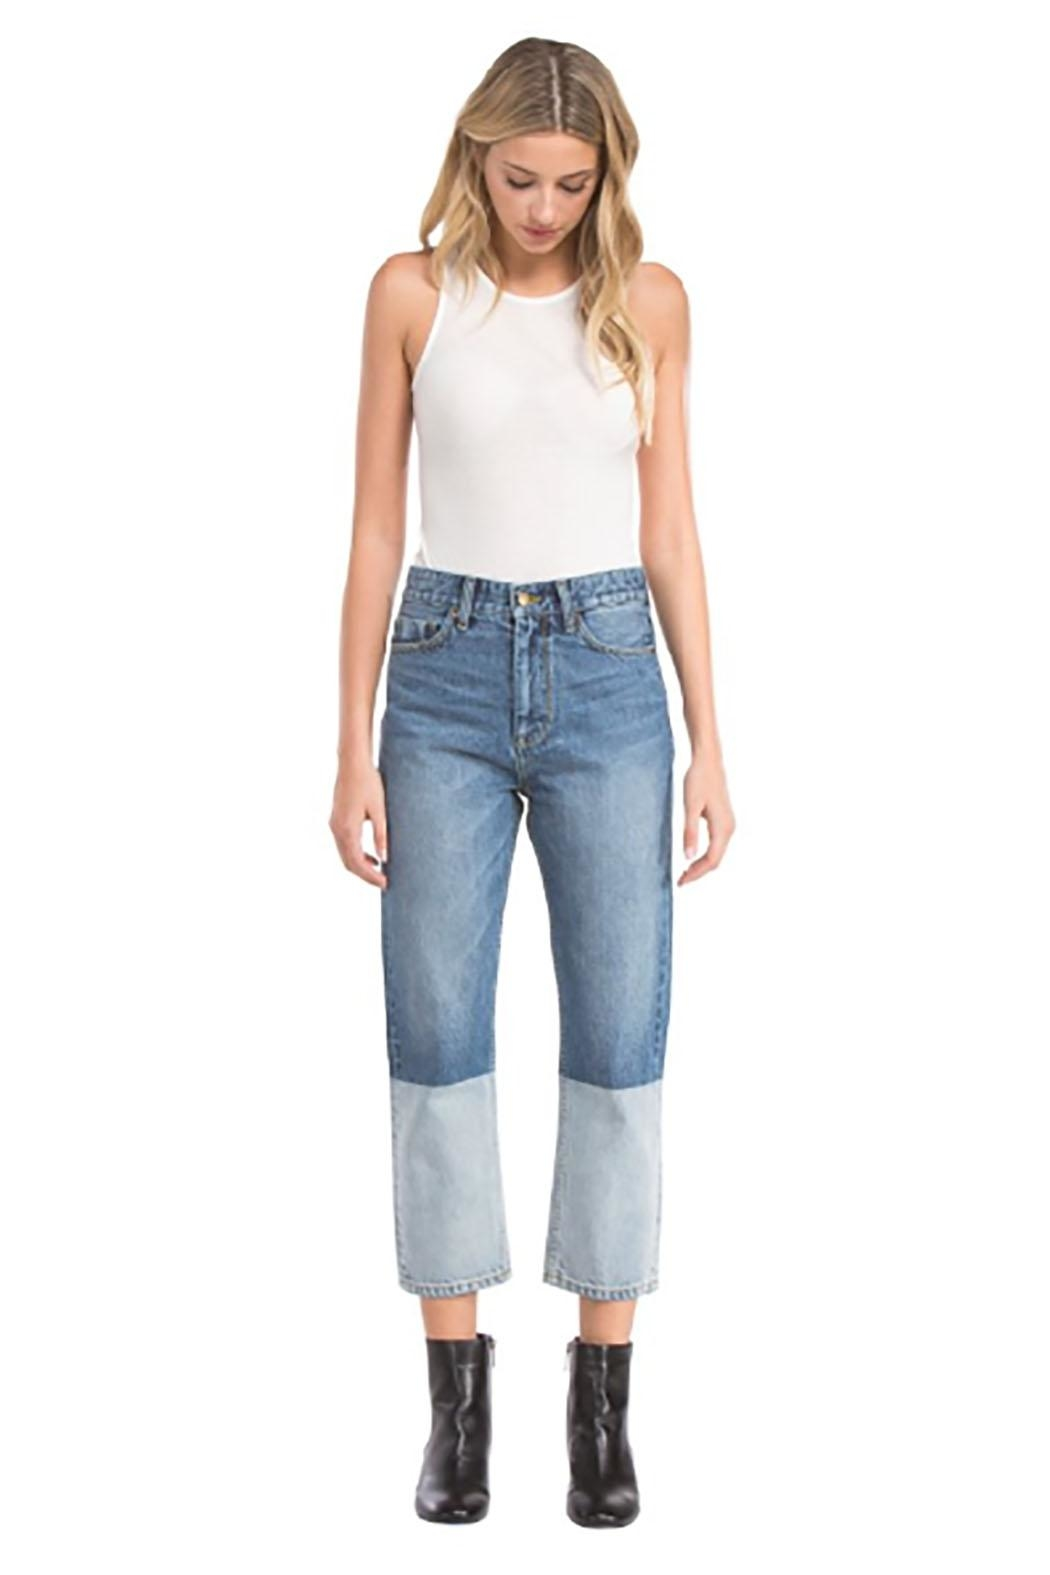 Blu Pepper Patchwork Denim Jean - Front Cropped Image